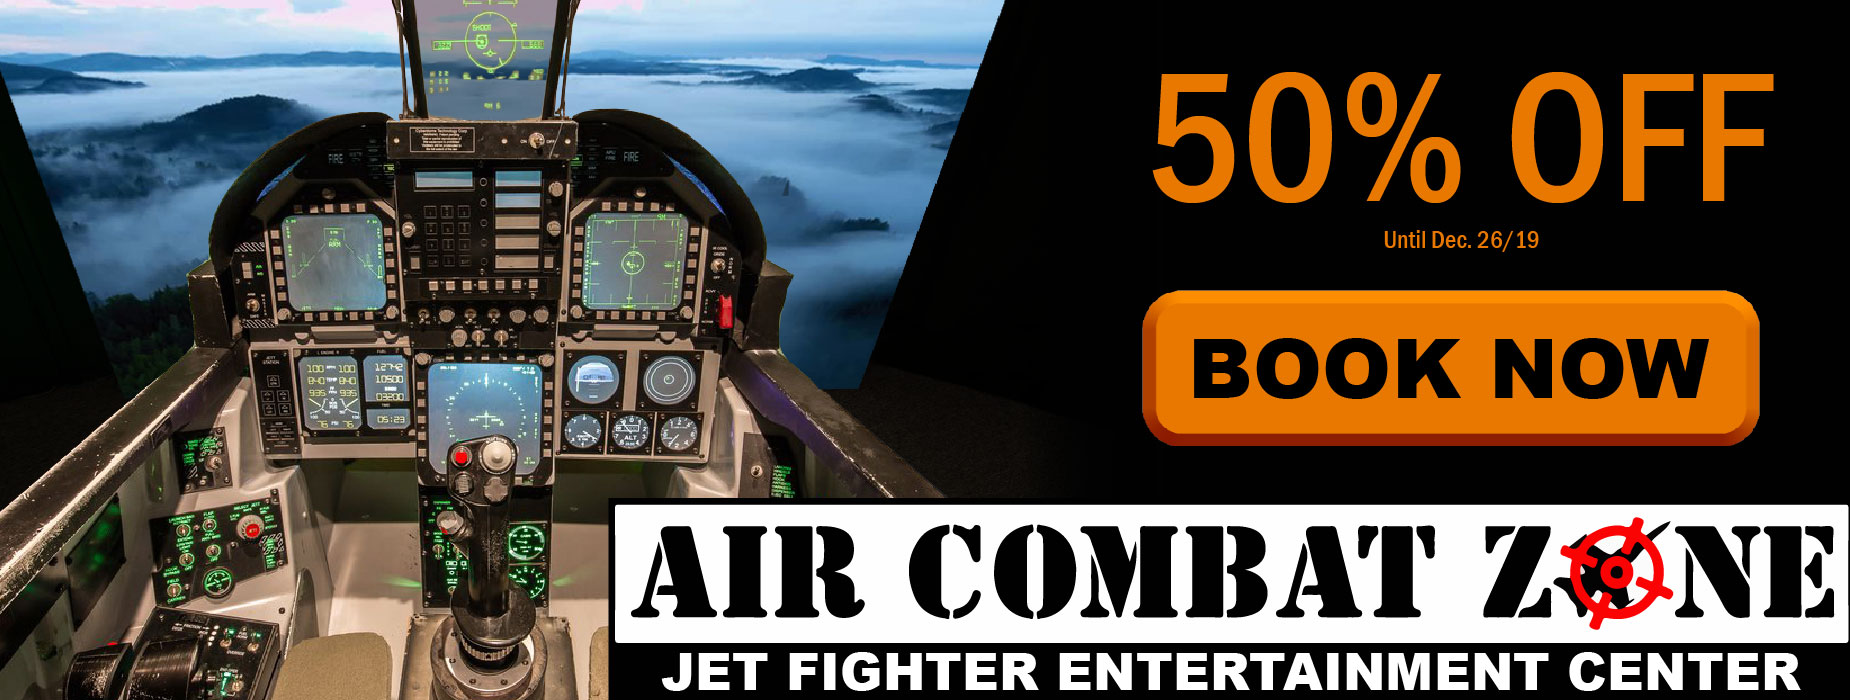 Poster for - Air Combat Zone - 50% OFF